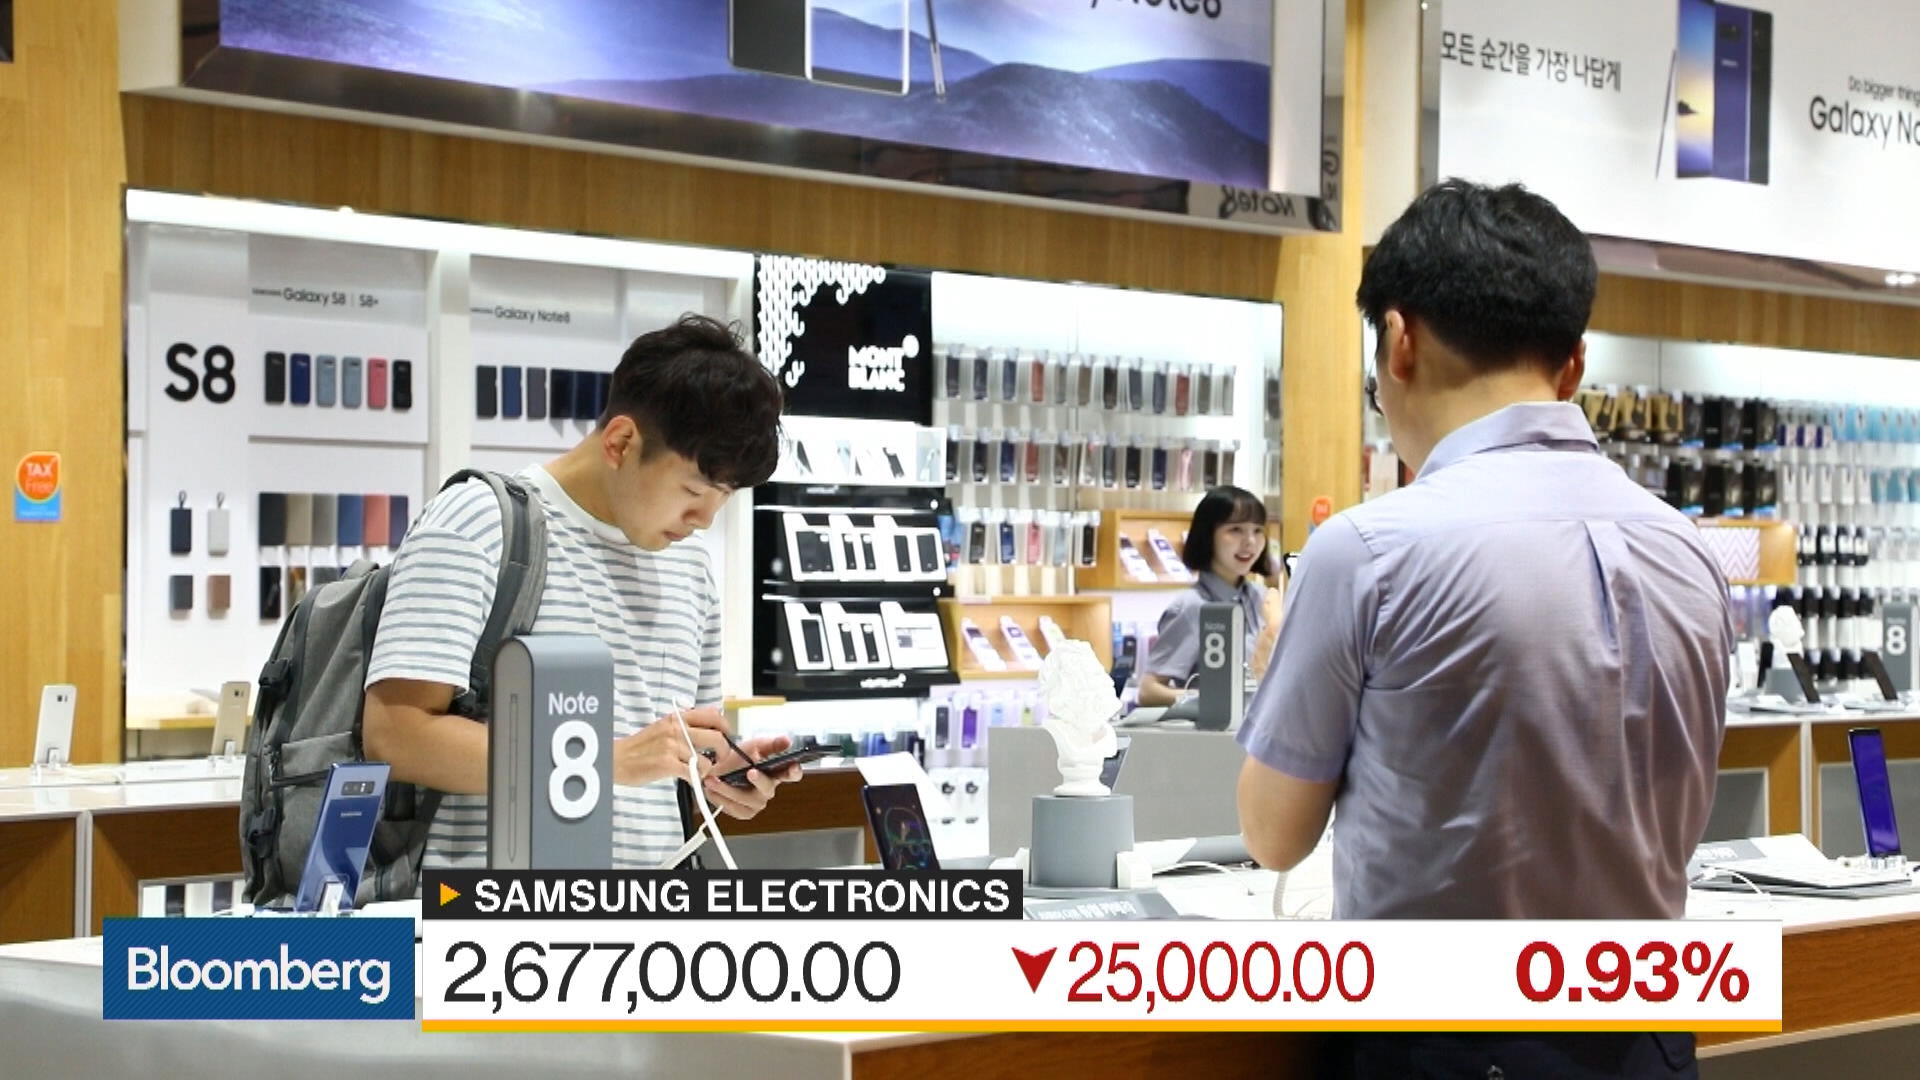 Samsung stock symbol nyse choice image symbol and sign ideas samsung electronics stock symbol nyse the best electronics 2017 ssnlf otc us stock e samsung electronics buycottarizona